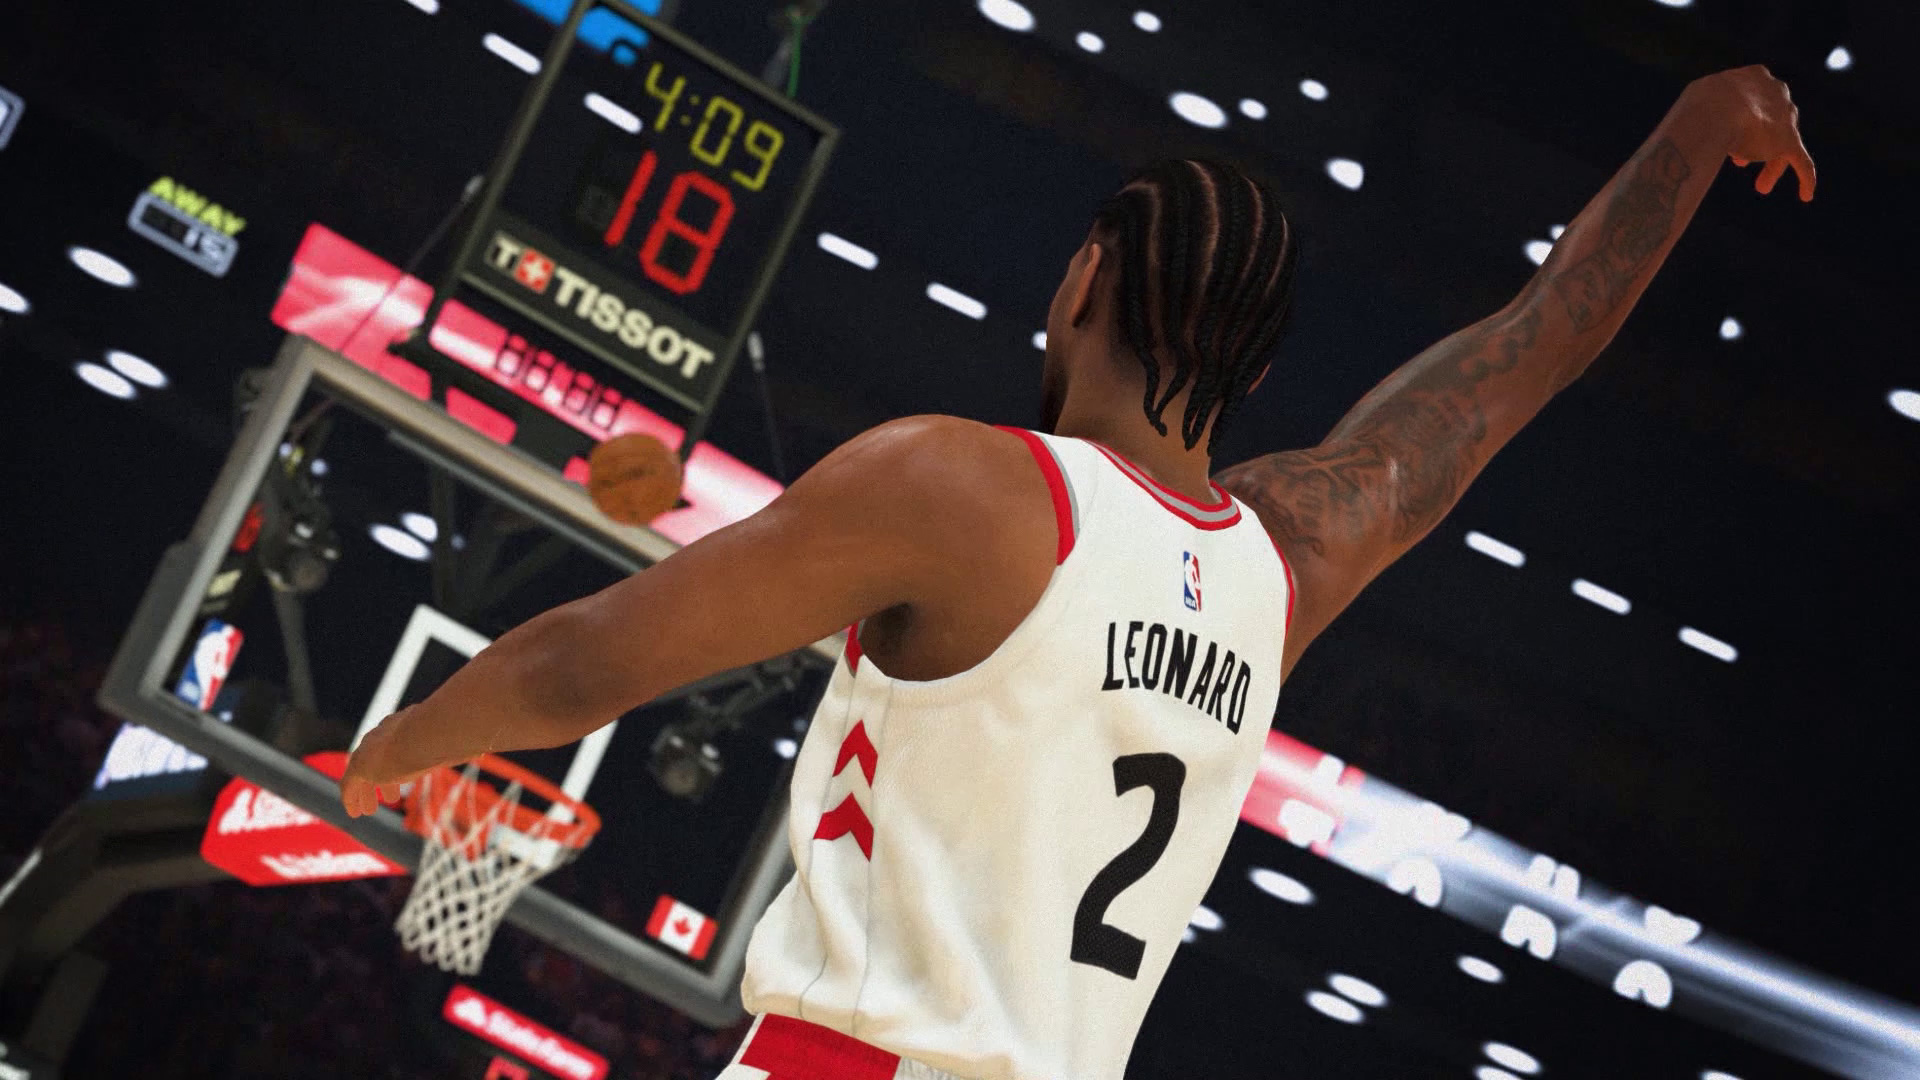 The unavoidable reality behind NBA 2K20's avoidable microtransactions